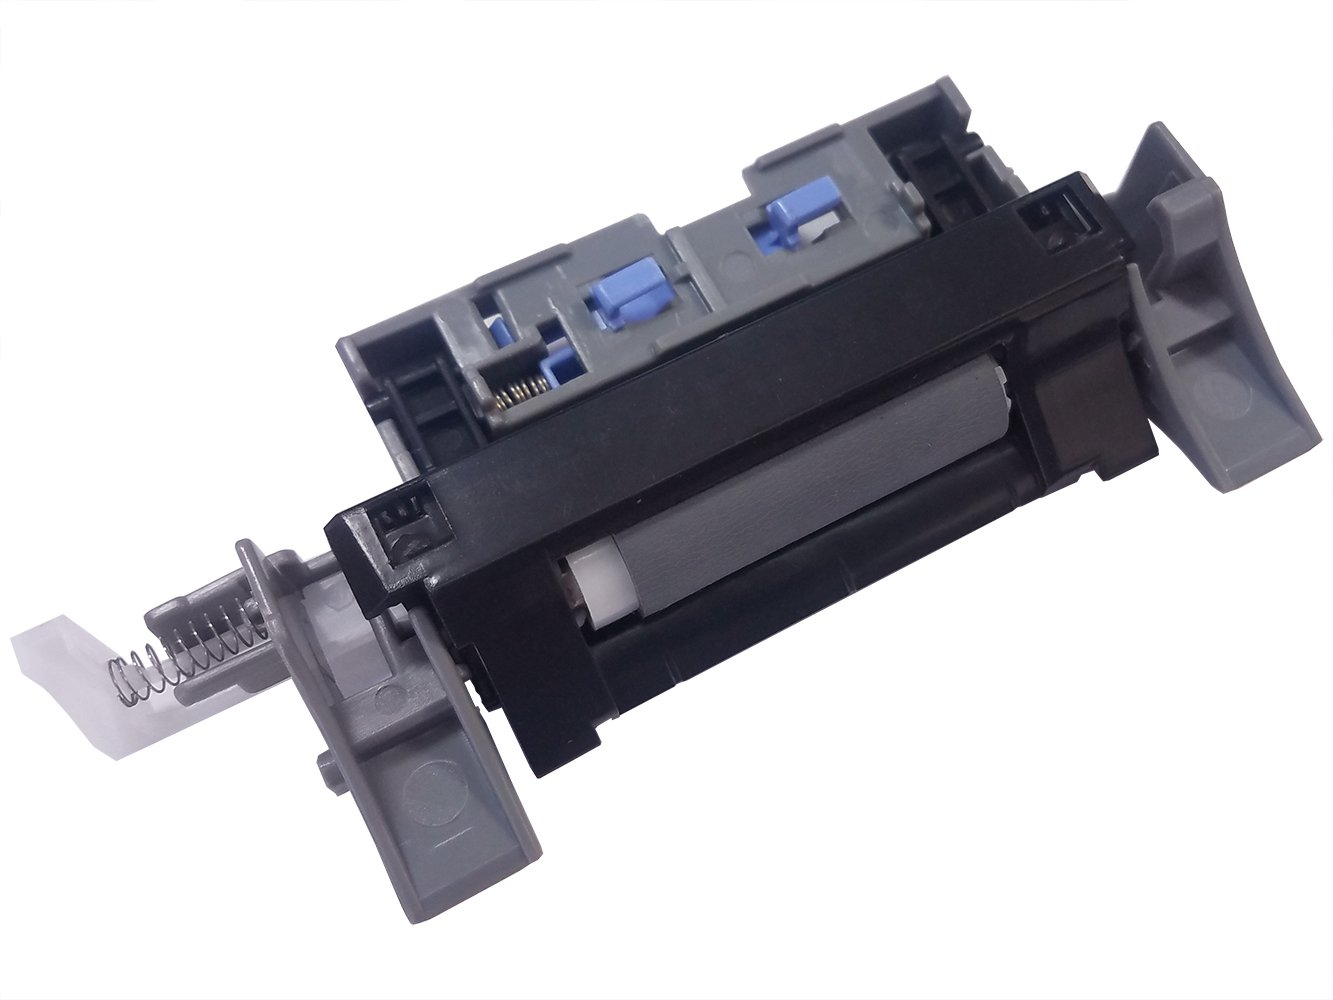 Altru Print CP5525-RK-DLX-AP Deluxe Roller Kit for HP Color Laserjet CP5225 / CP5525 / M750 / M775 Includes RM1-7927 Transfer Roller and Rollers for Tray 1/2 / 3/4 / 5/6 by Altru Print (Image #7)